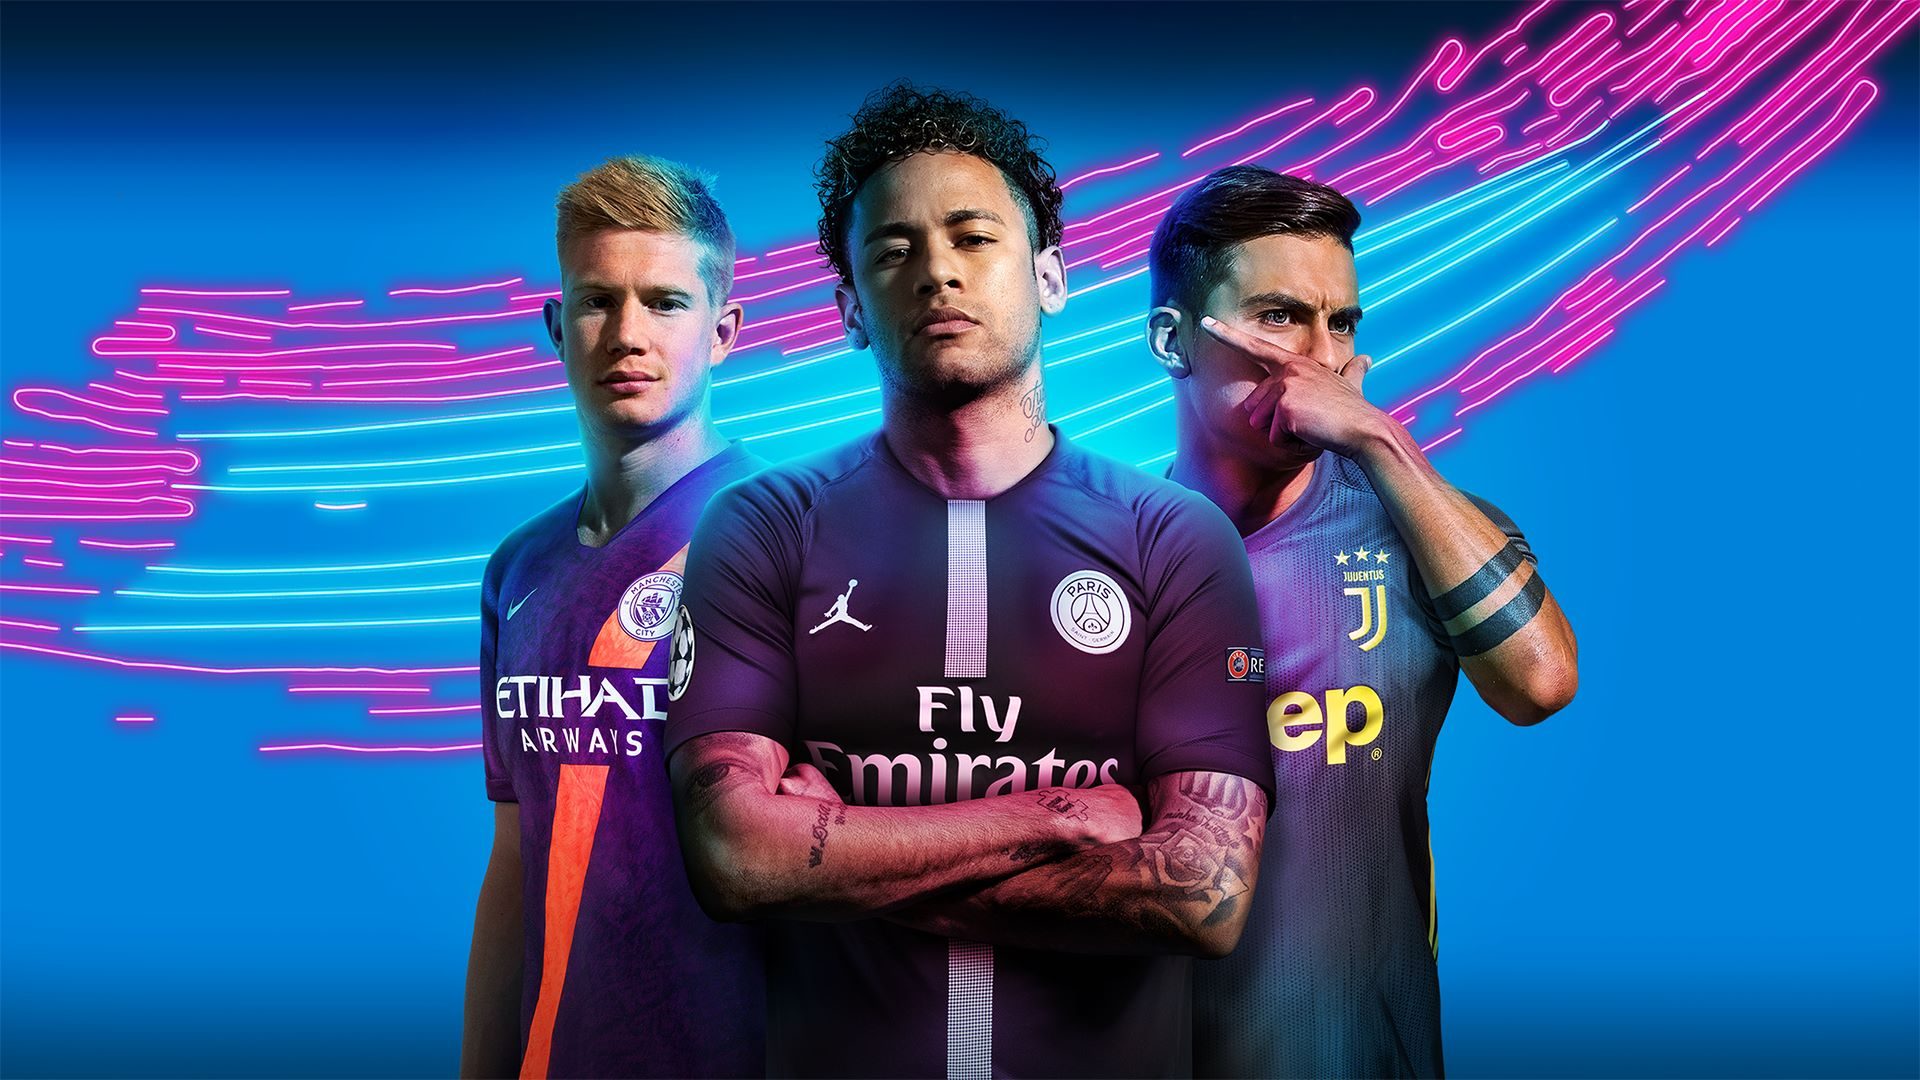 Everything About FIFA 20 Demo Release Date, Teams, Game Modes, And Early Access